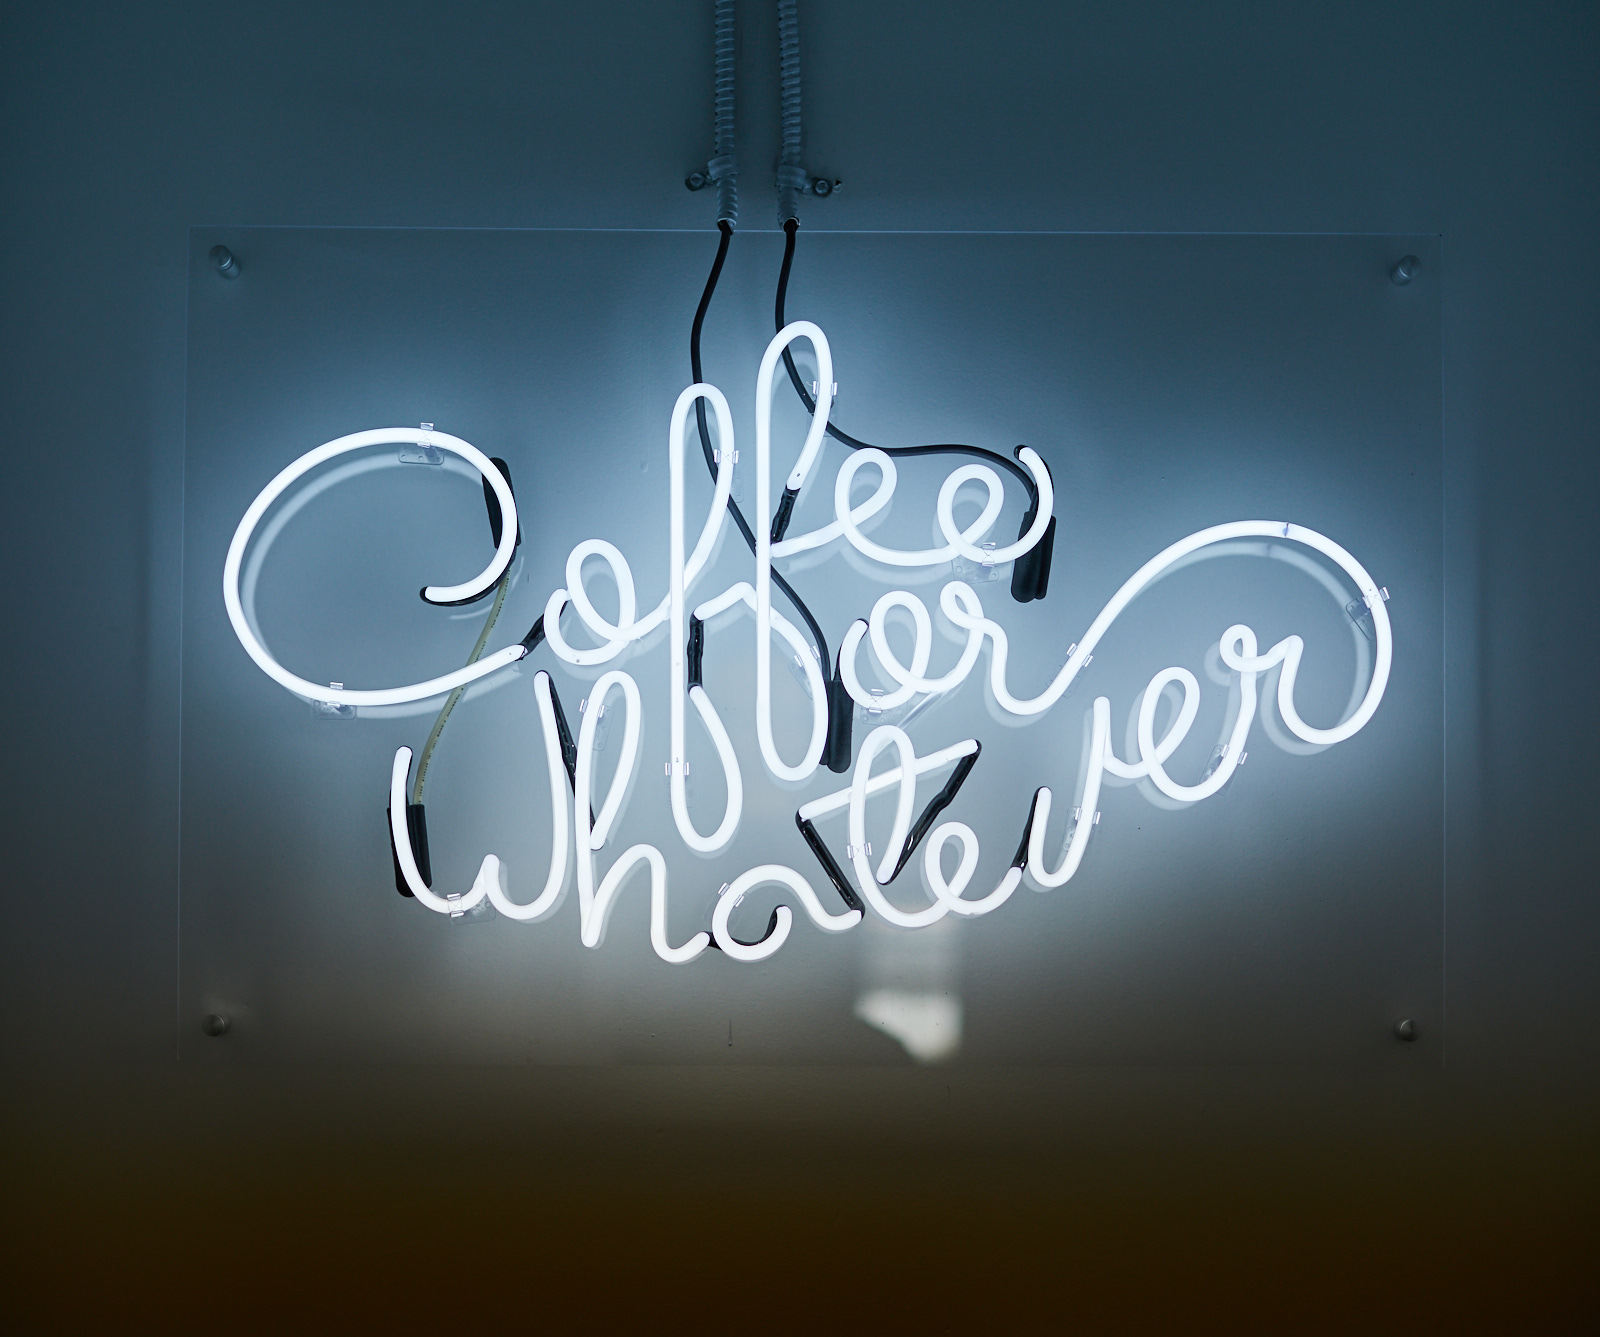 neon-sign-coffee-or-whatever.jpg